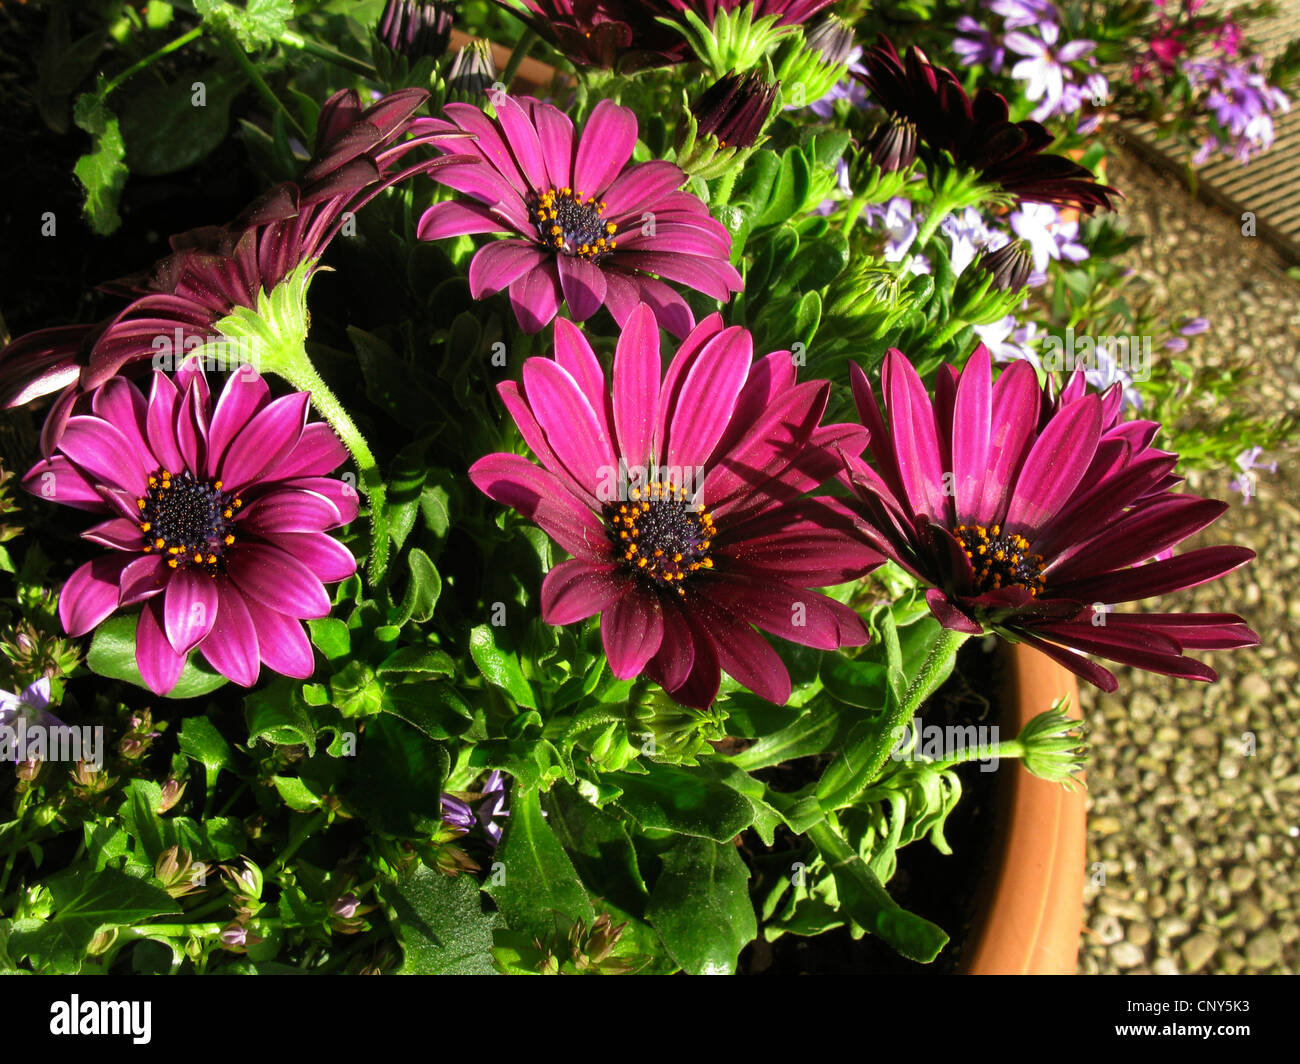 african daisy lavender african daisy norlindh freeway daisy stock photo royalty free image. Black Bedroom Furniture Sets. Home Design Ideas